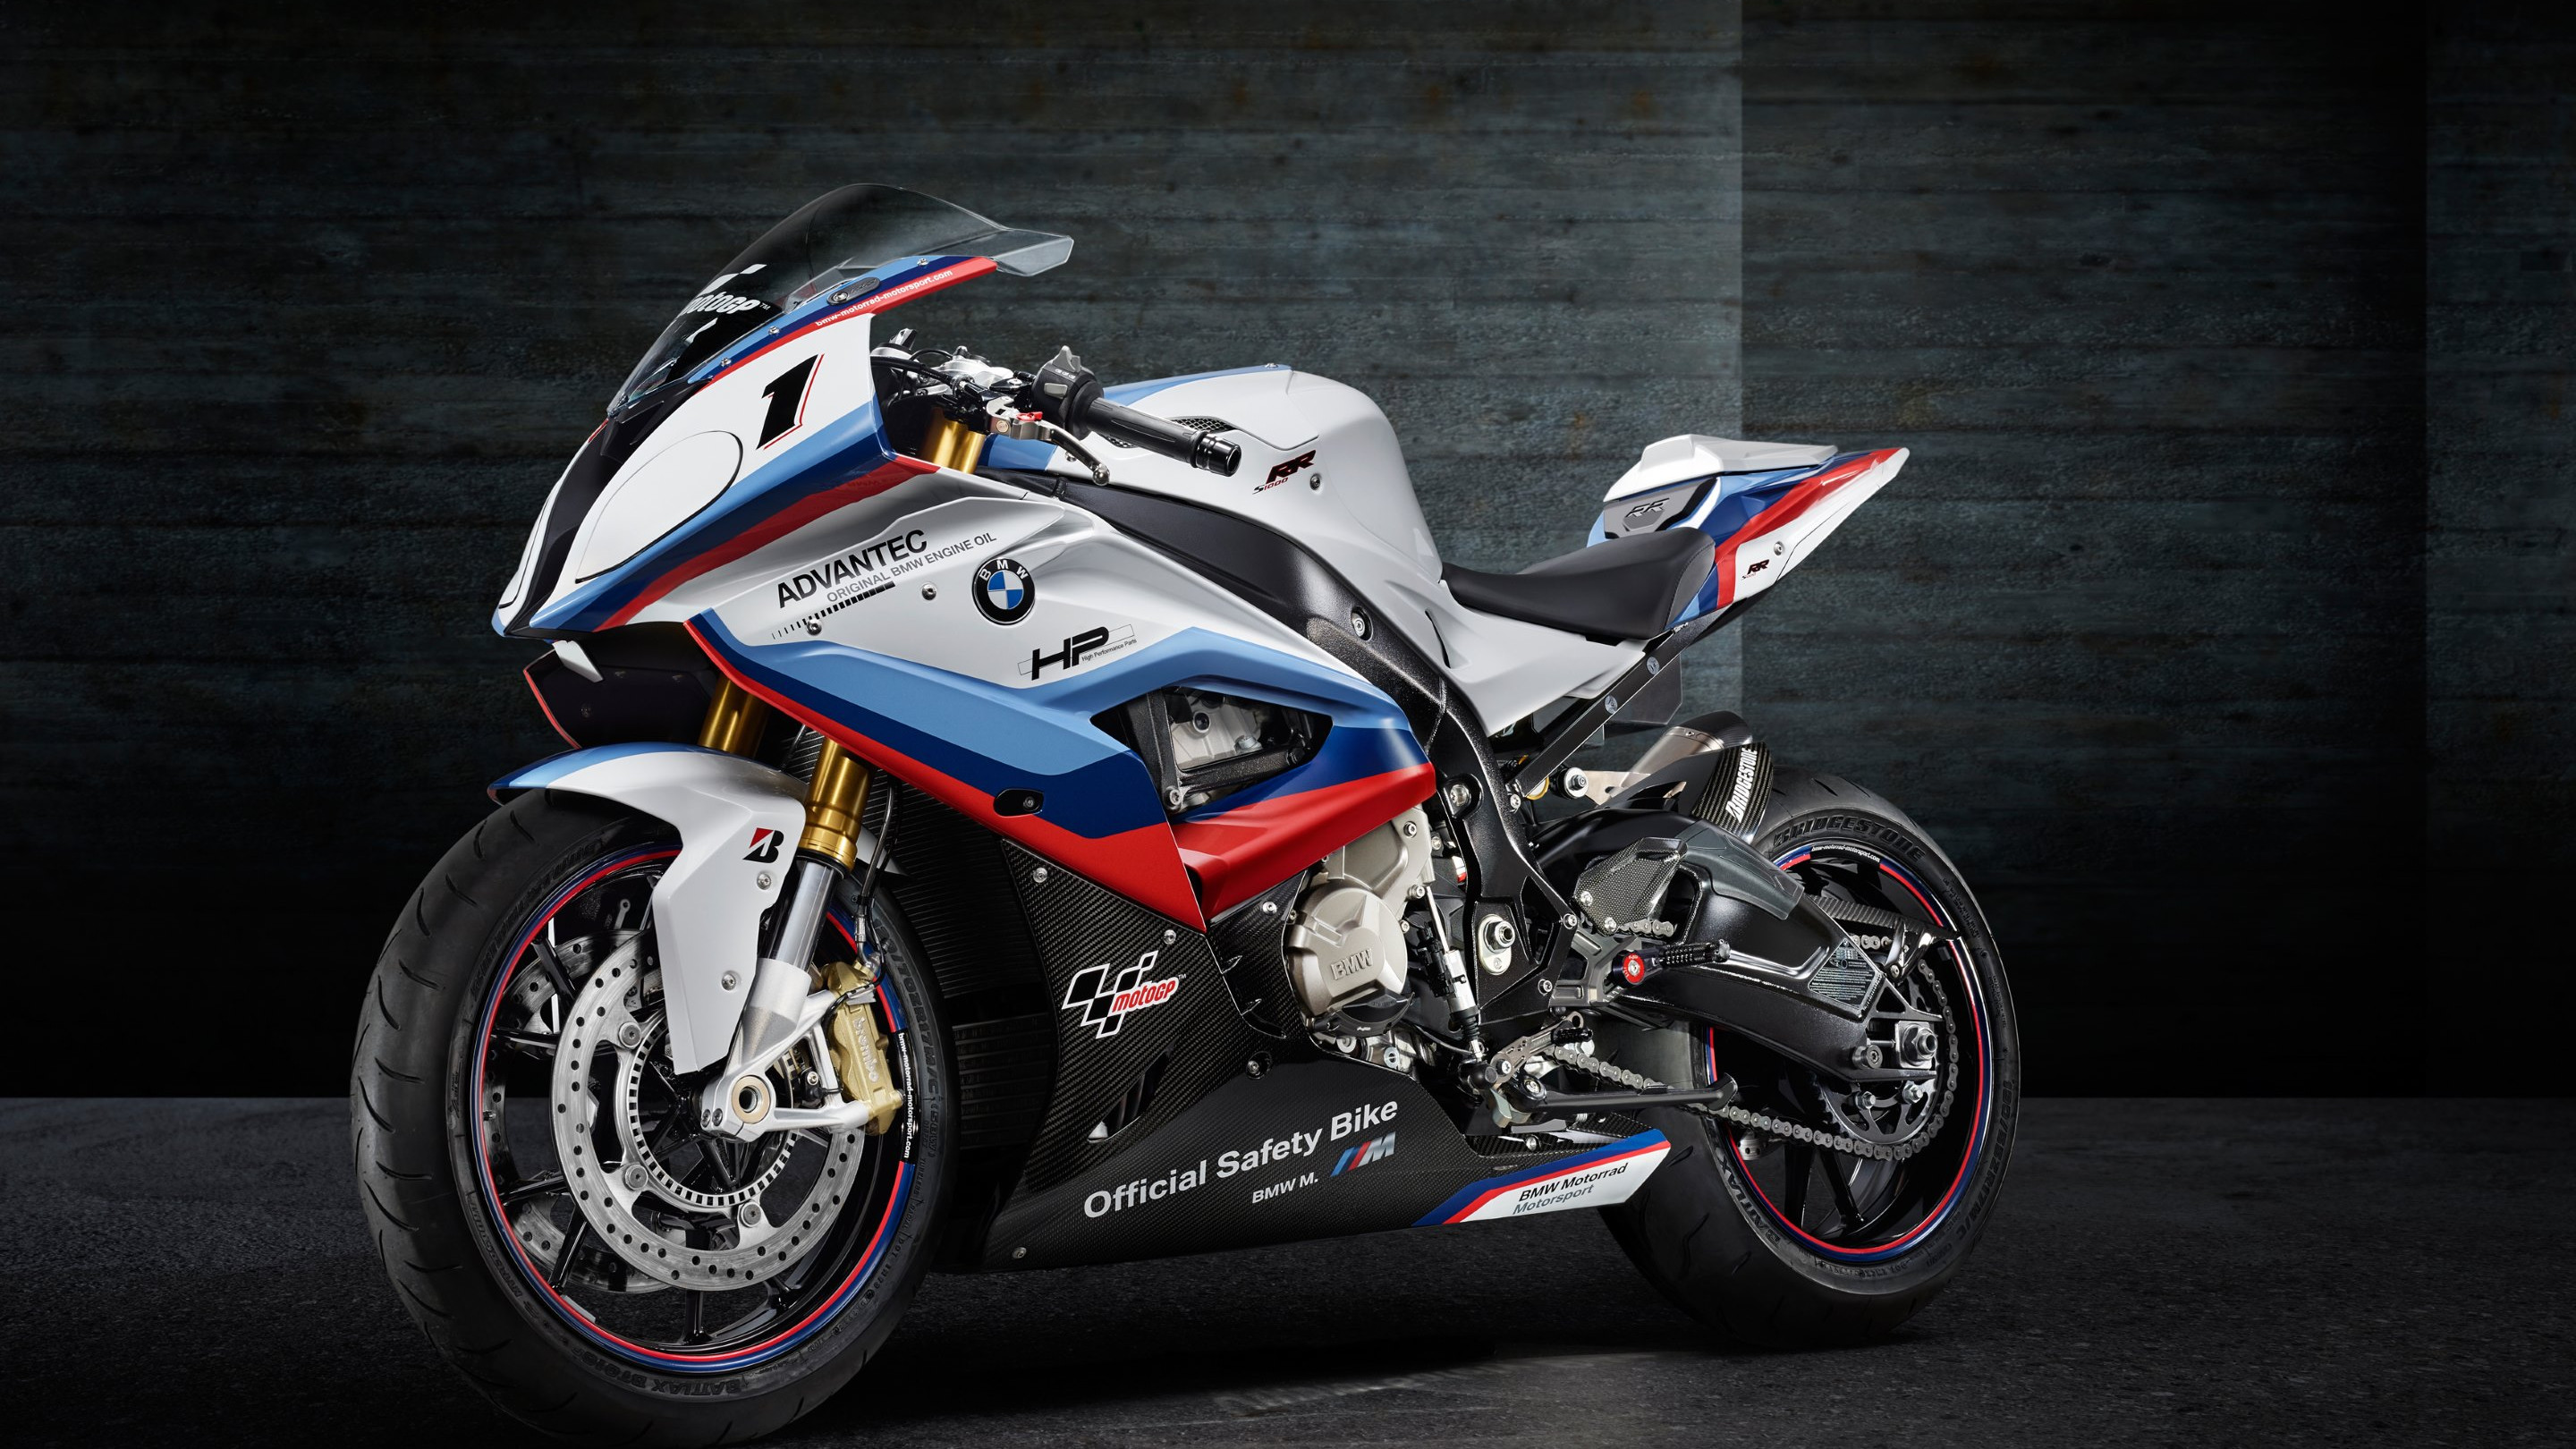 BMW S1000RR MotoGP Safety Motorcycle | 2880x1620 wallpaper